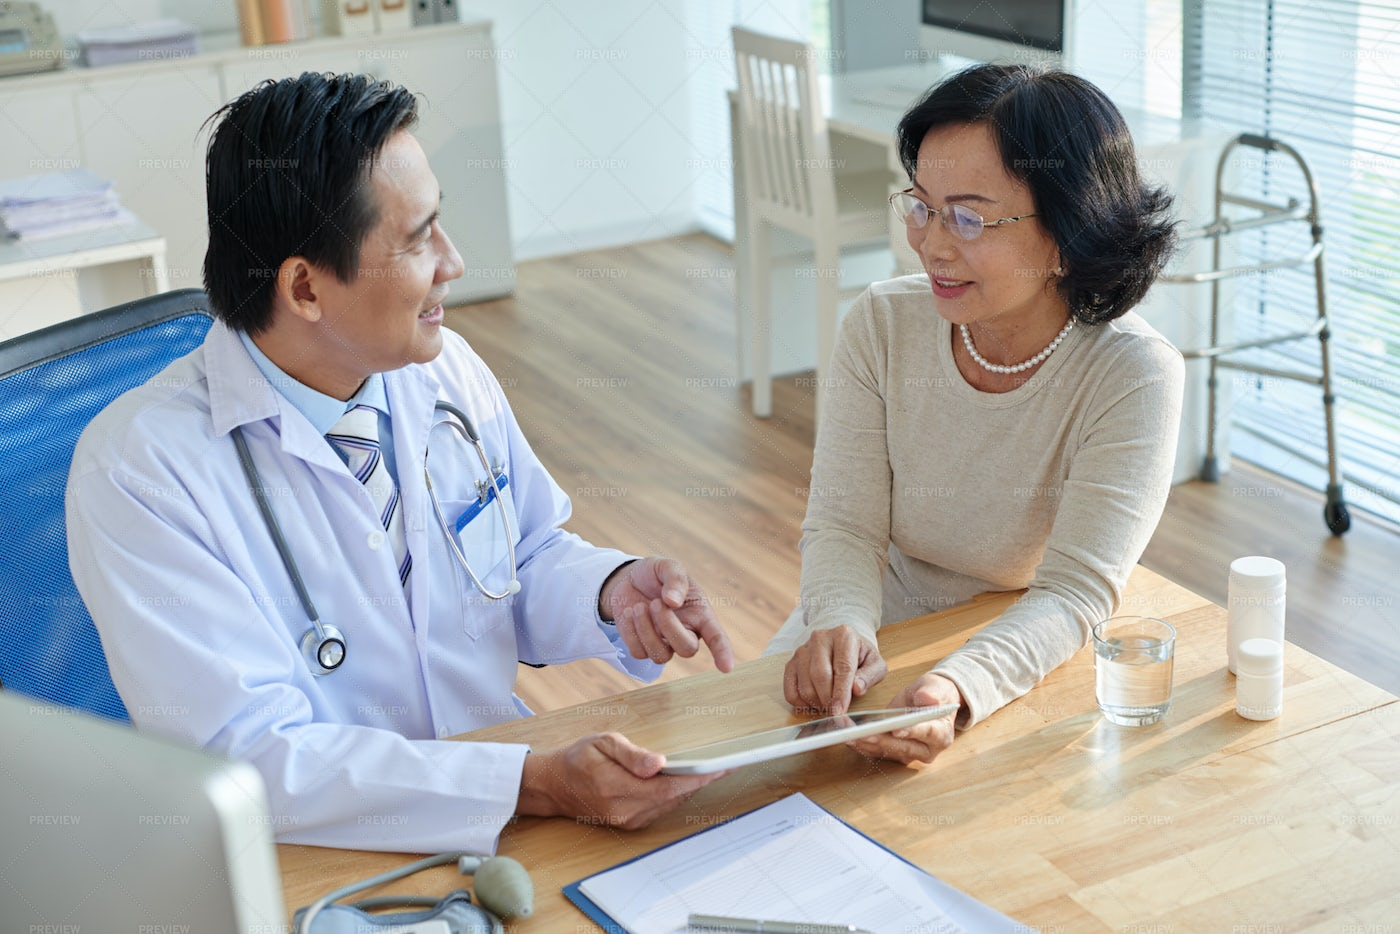 Showing Test Results To Patient: Stock Photos